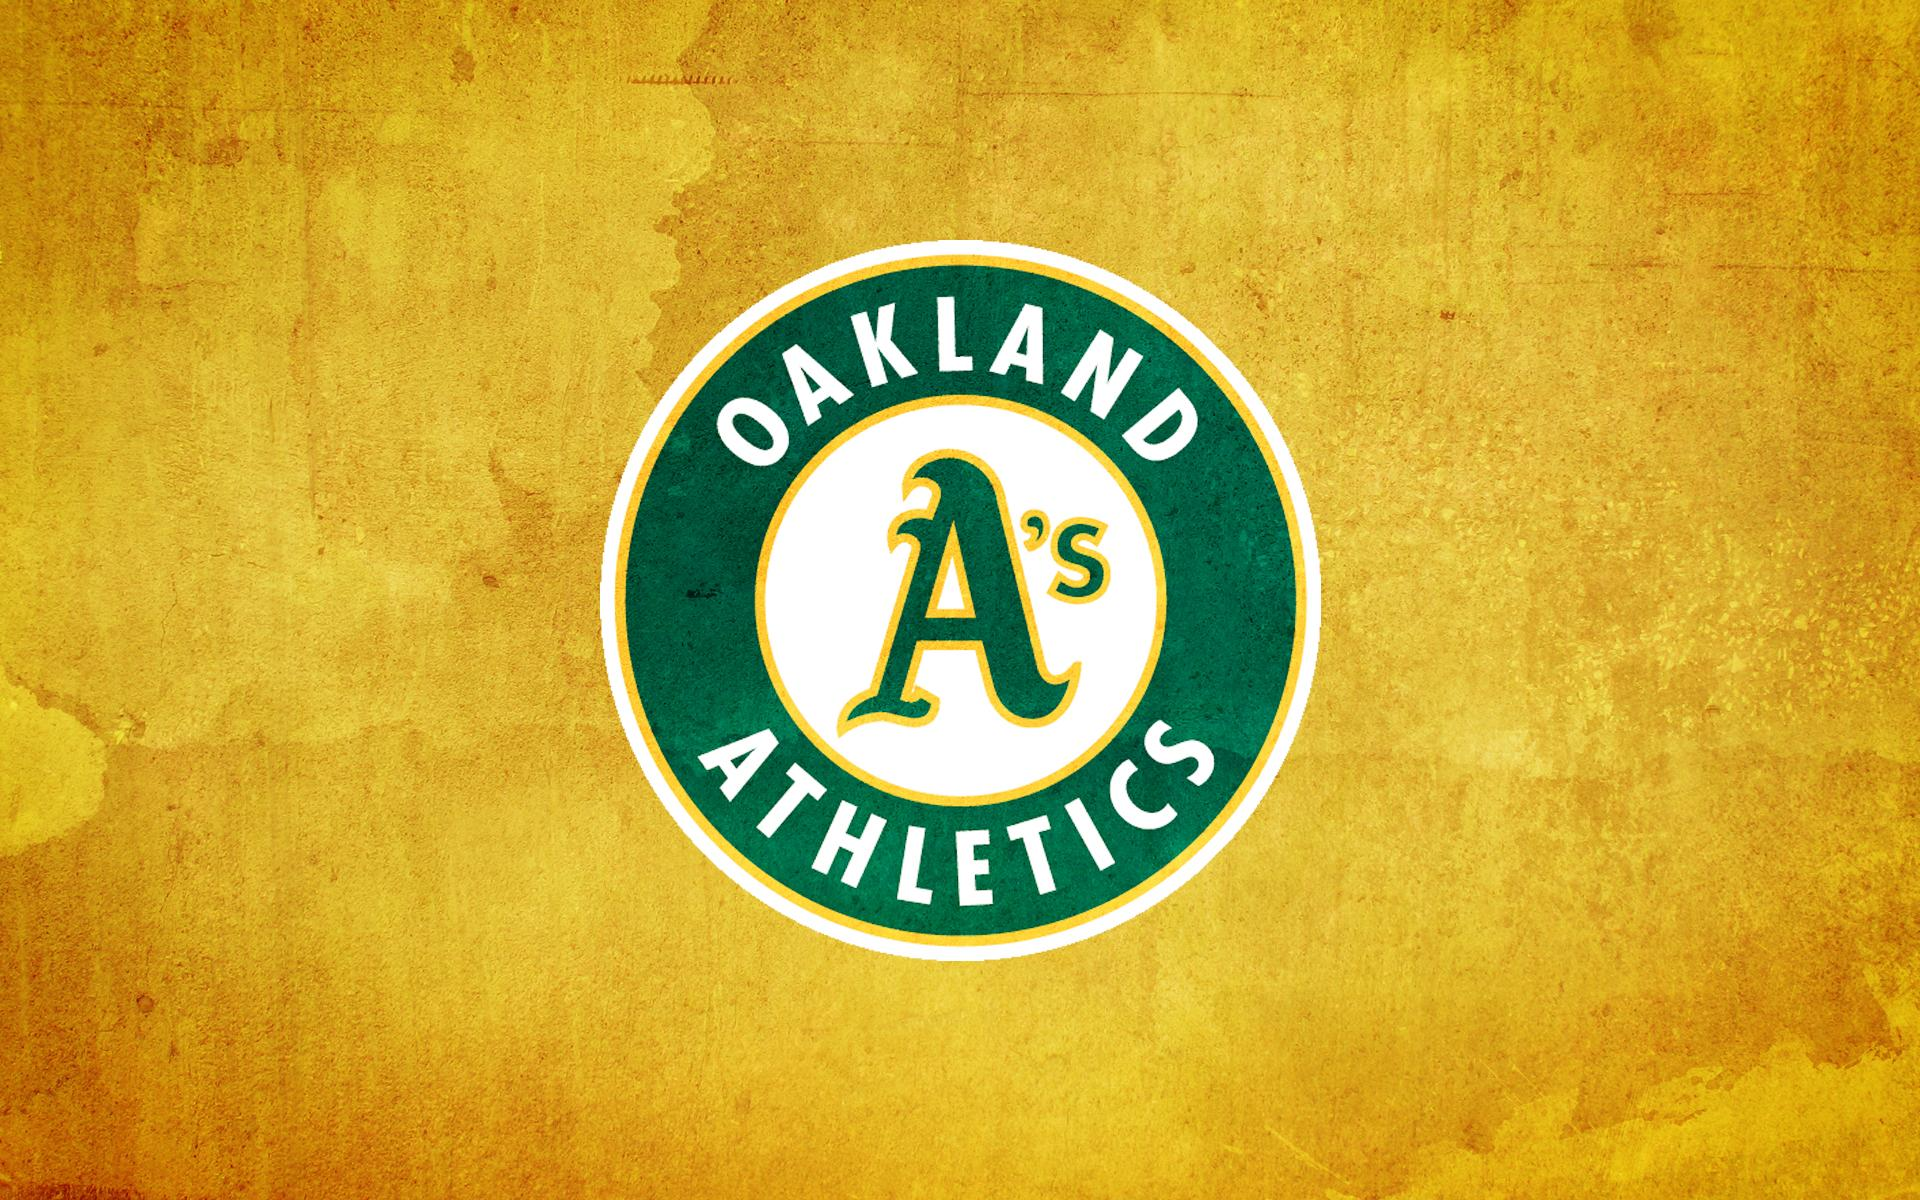 oakland athletics wallpaper background desktop 1920x1200 1920x1200